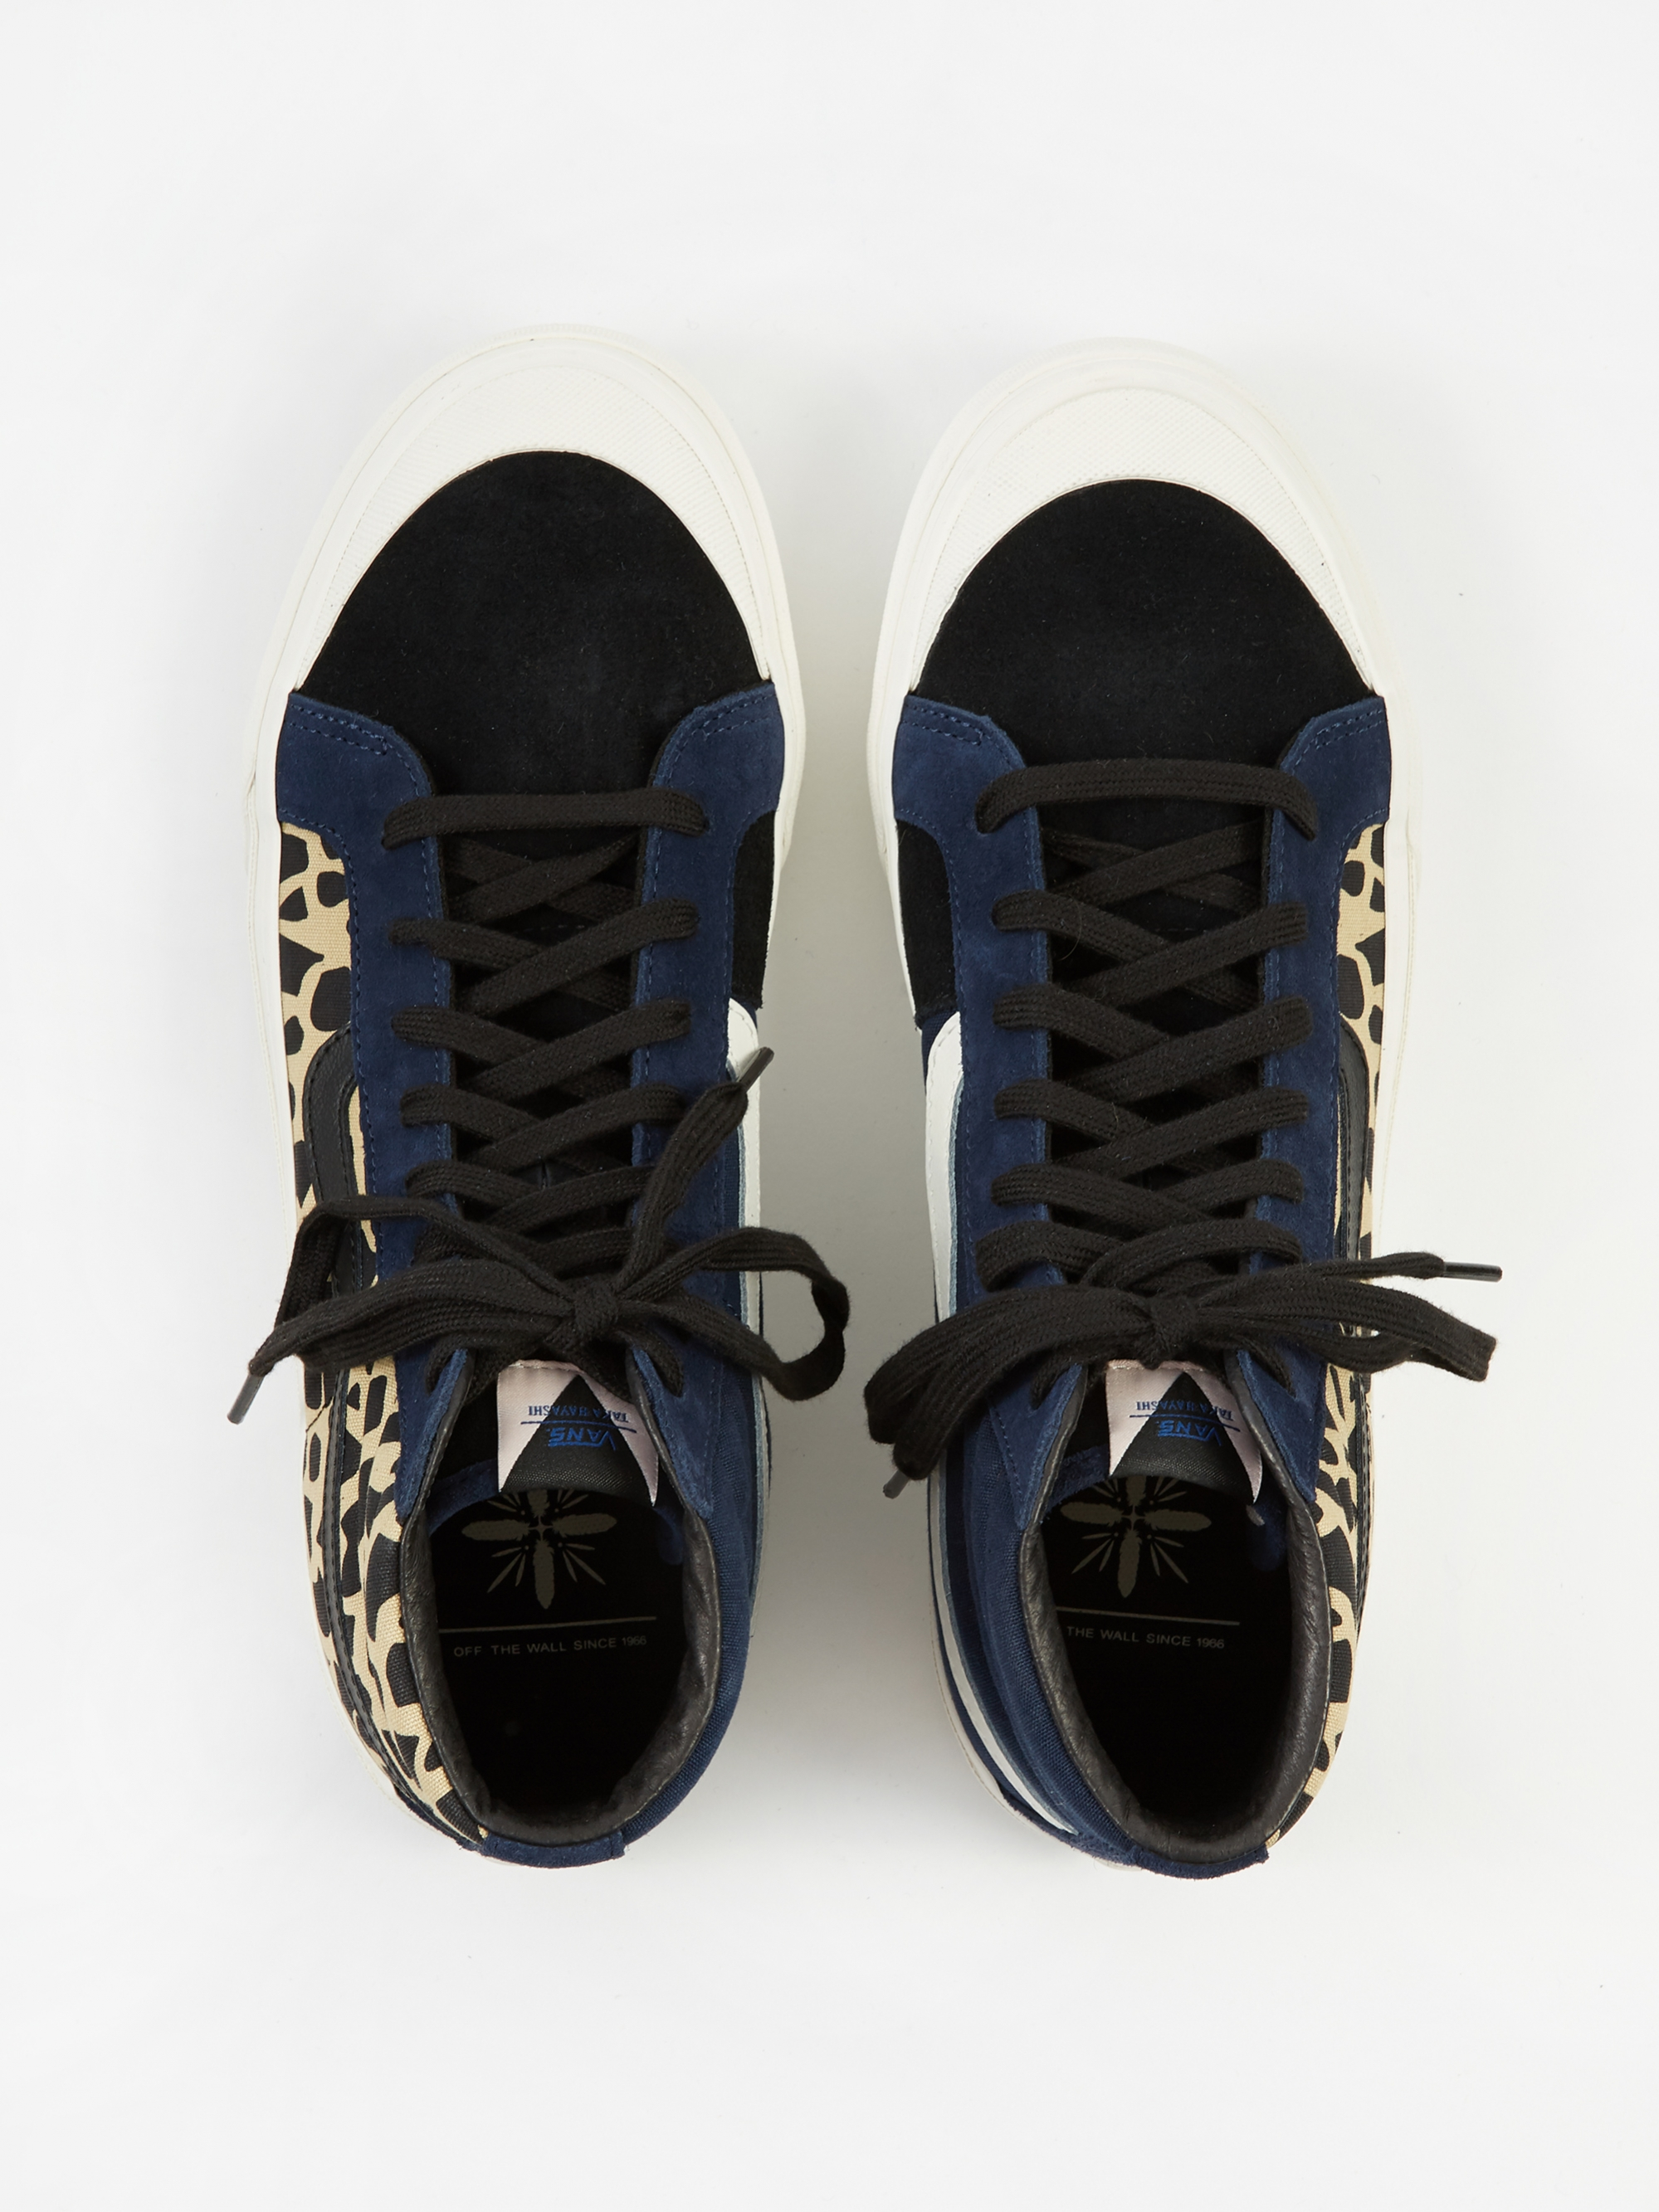 e7409f19a035ff Vans Vault x Taka Hayashi Style 138 LX - (Suede Canvas) Cheetah